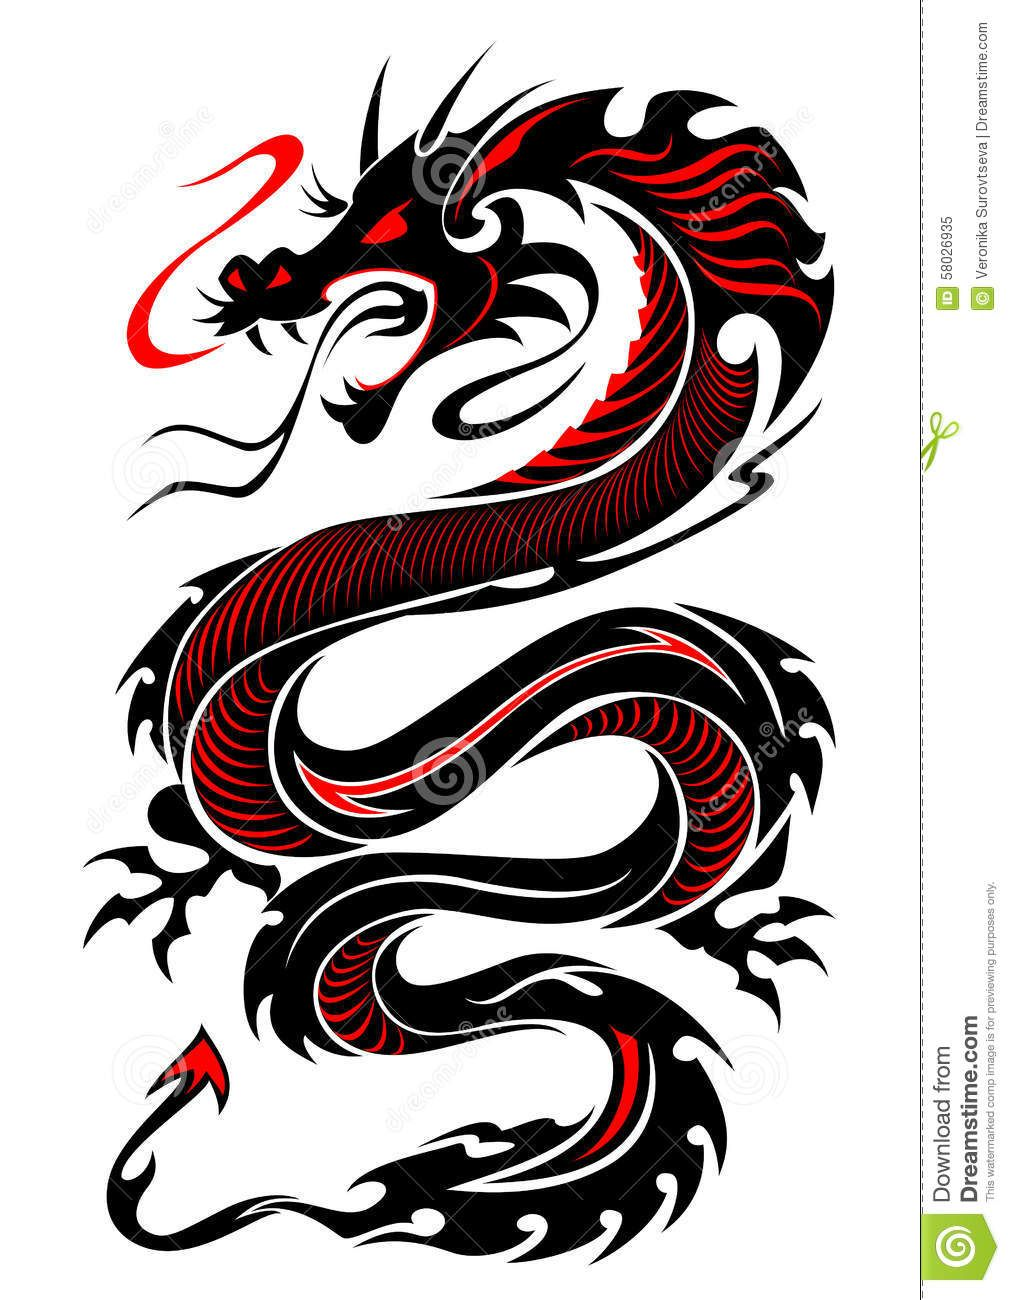 Tribal Dragon Tattoo Vector Illustration In Black And Red Colours Dragon Tattoos For Men Tribal Dragon Tattoo Red Dragon Tattoo